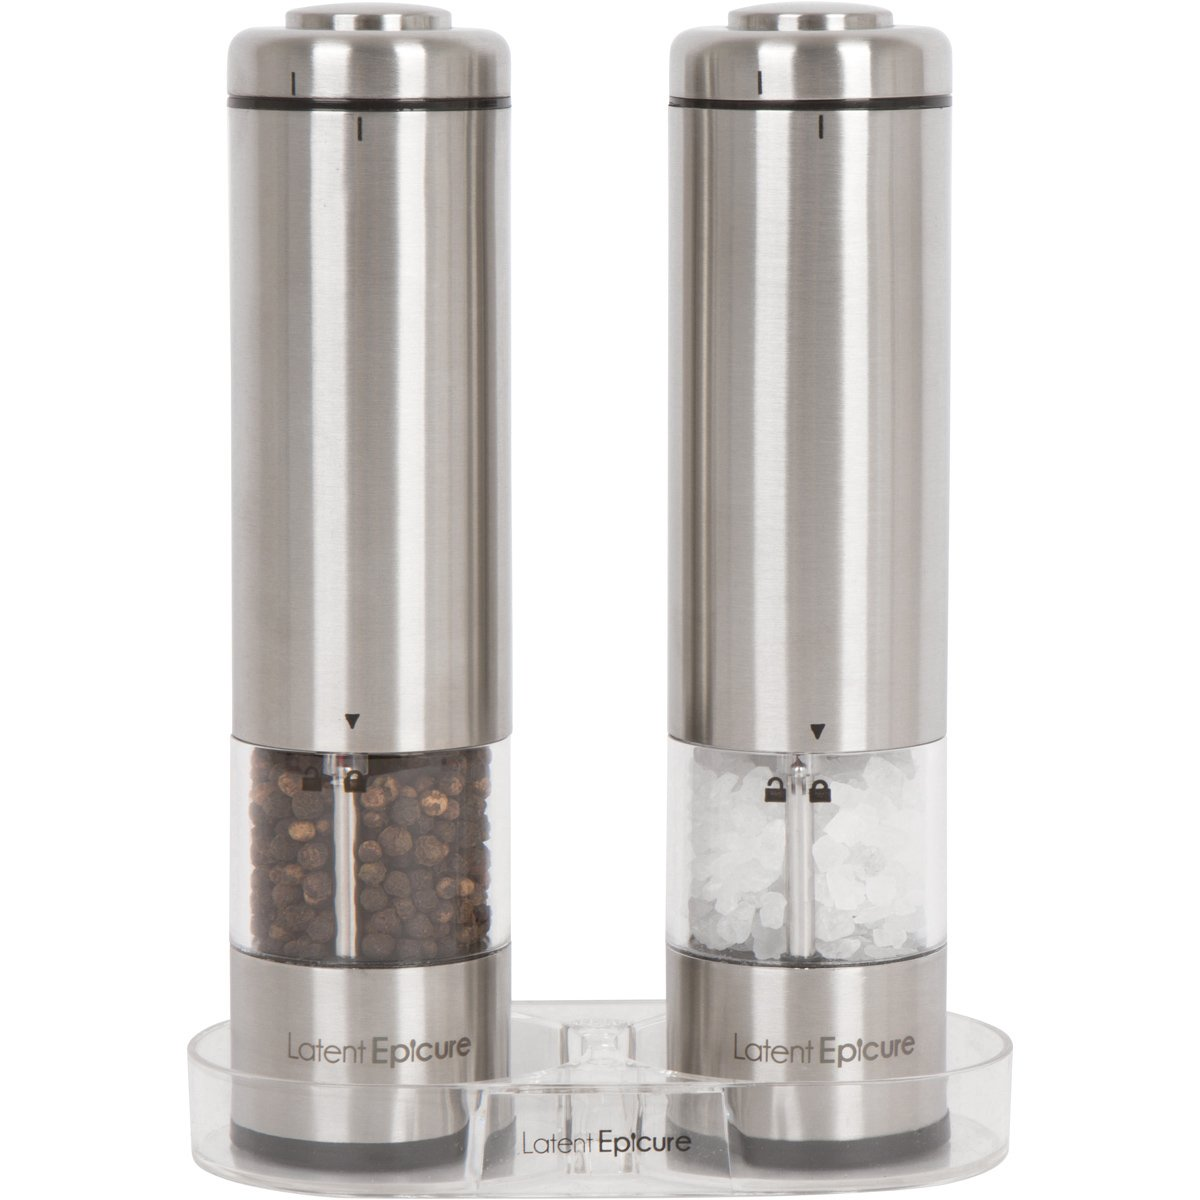 Latent Epicure Battery Operated Grinder